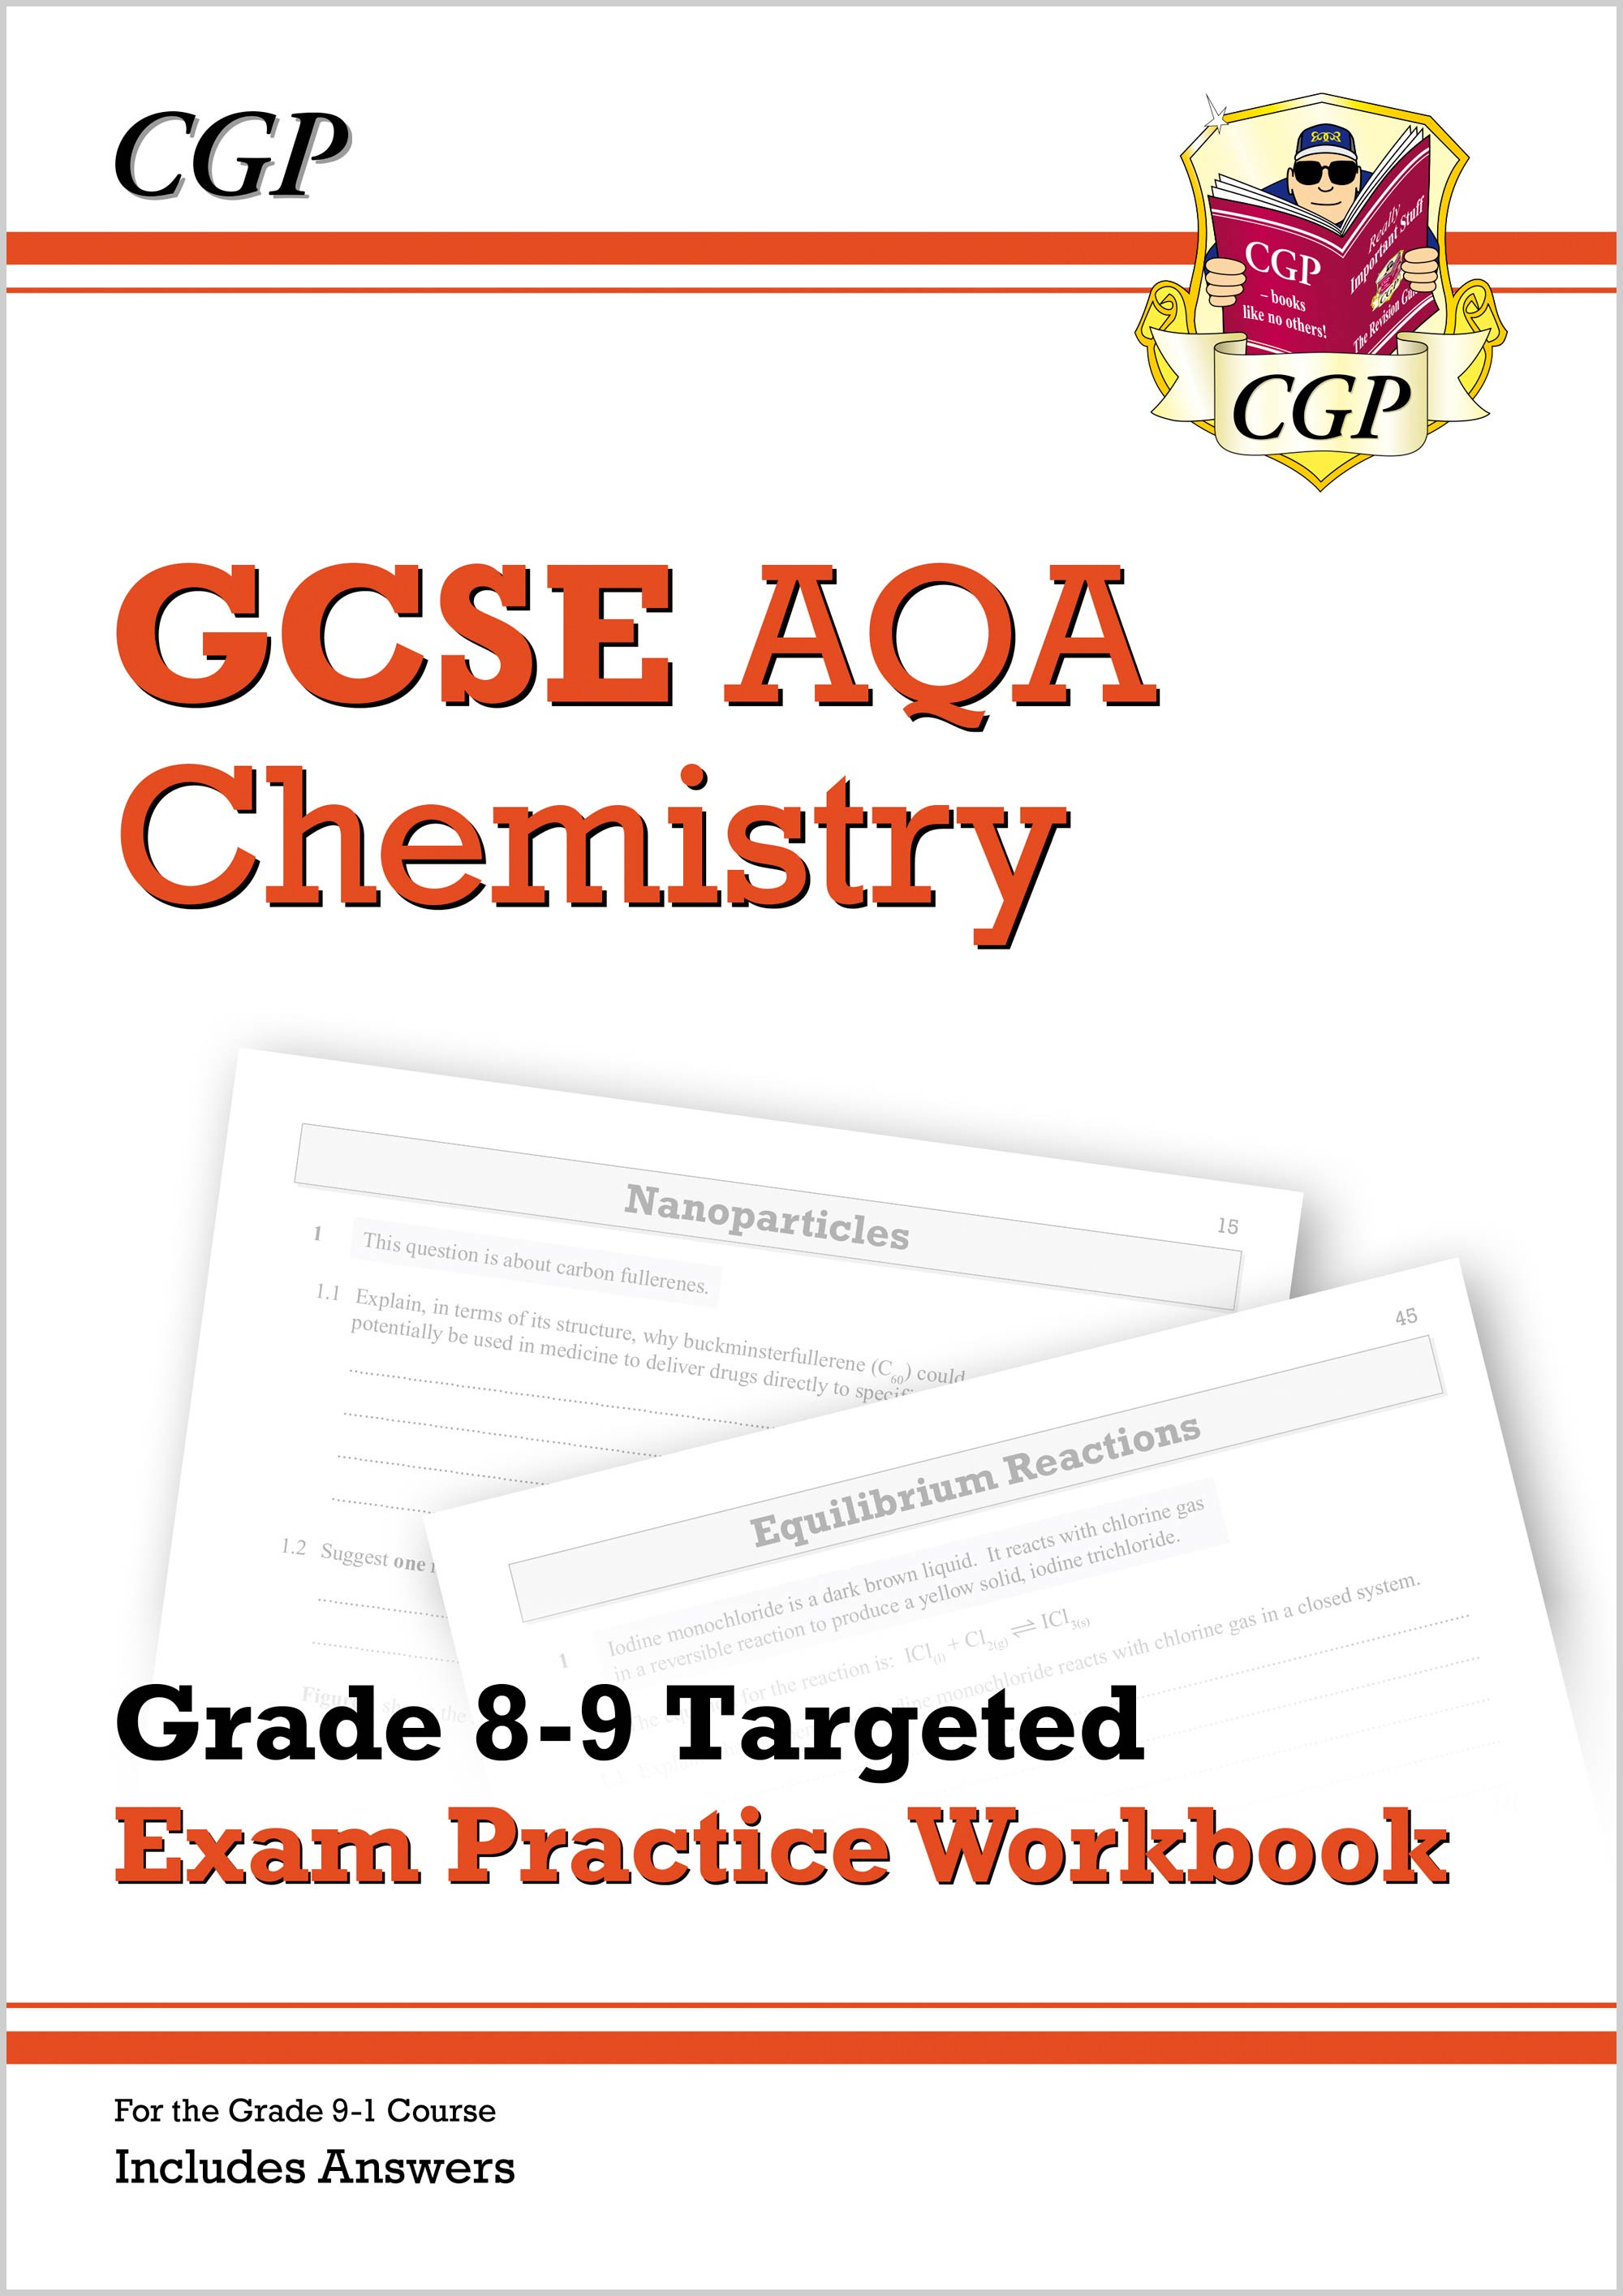 CA9Q41DK - New GCSE Chemistry AQA Grade 8-9 Targeted Exam Practice Workbook (includes Answers)